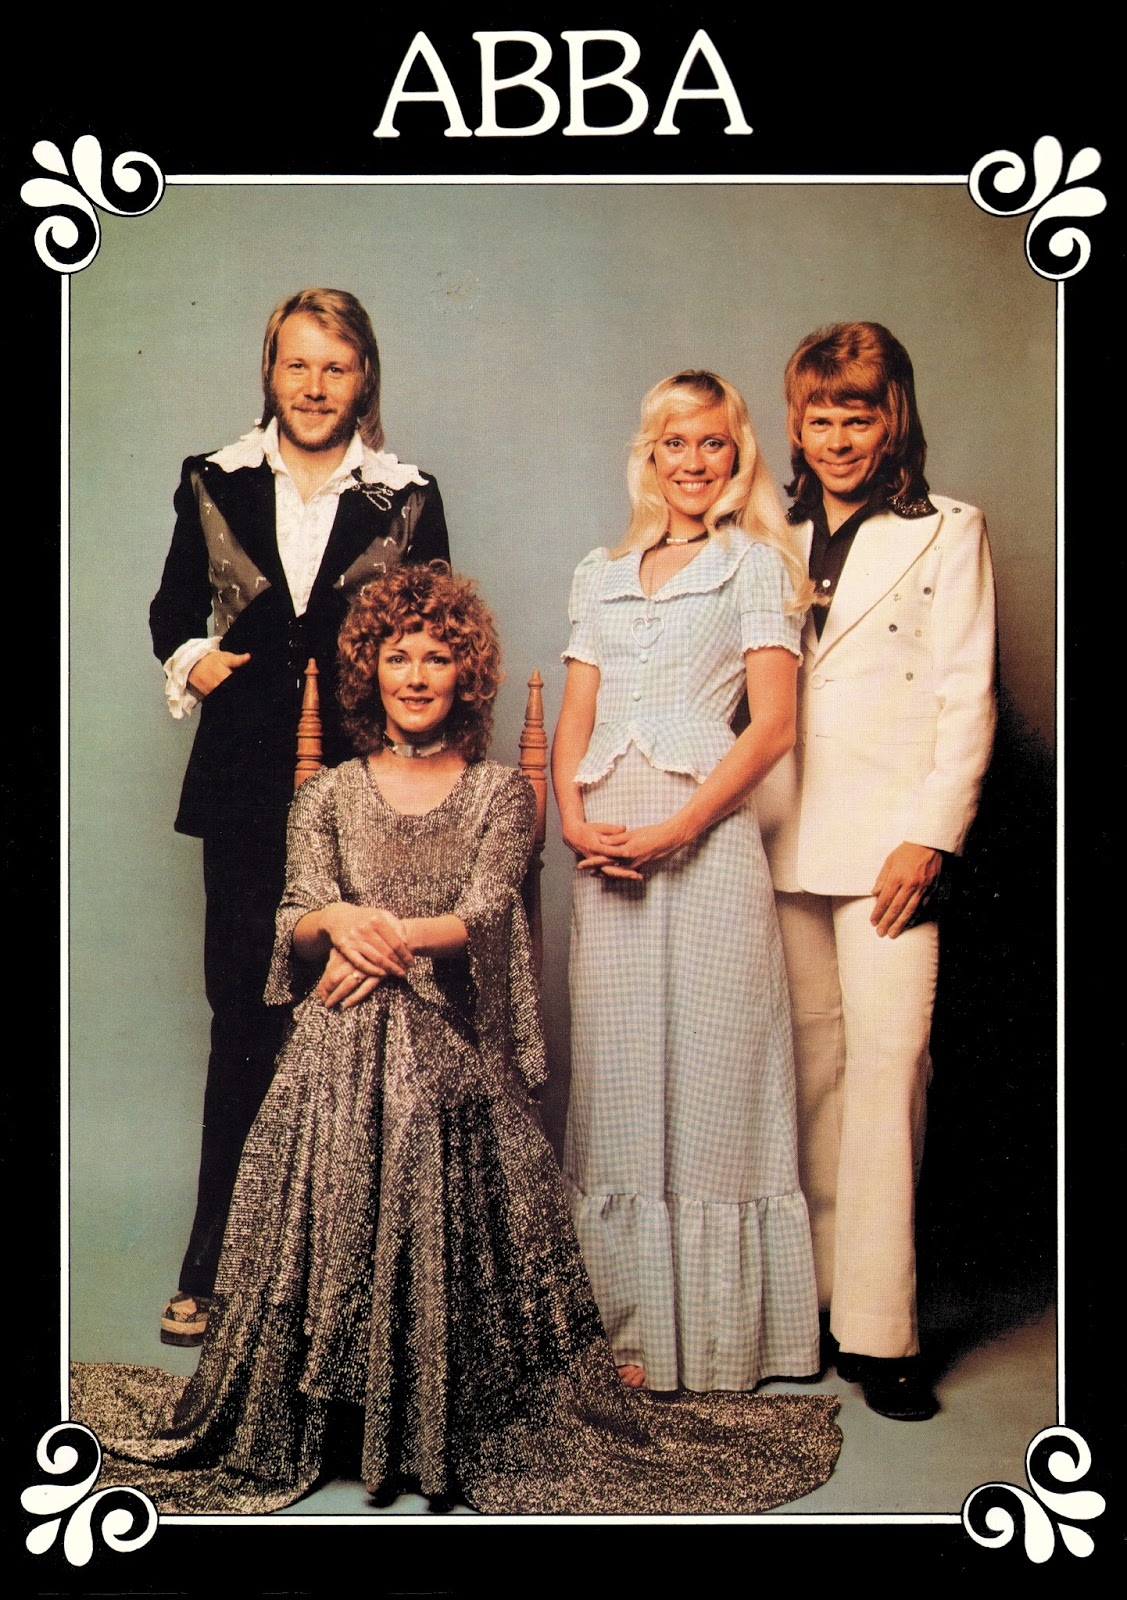 Best Of The Best 3 No Turning Back 1995: ABBAFanatic: 'The Best Of ABBA' Released In Australia